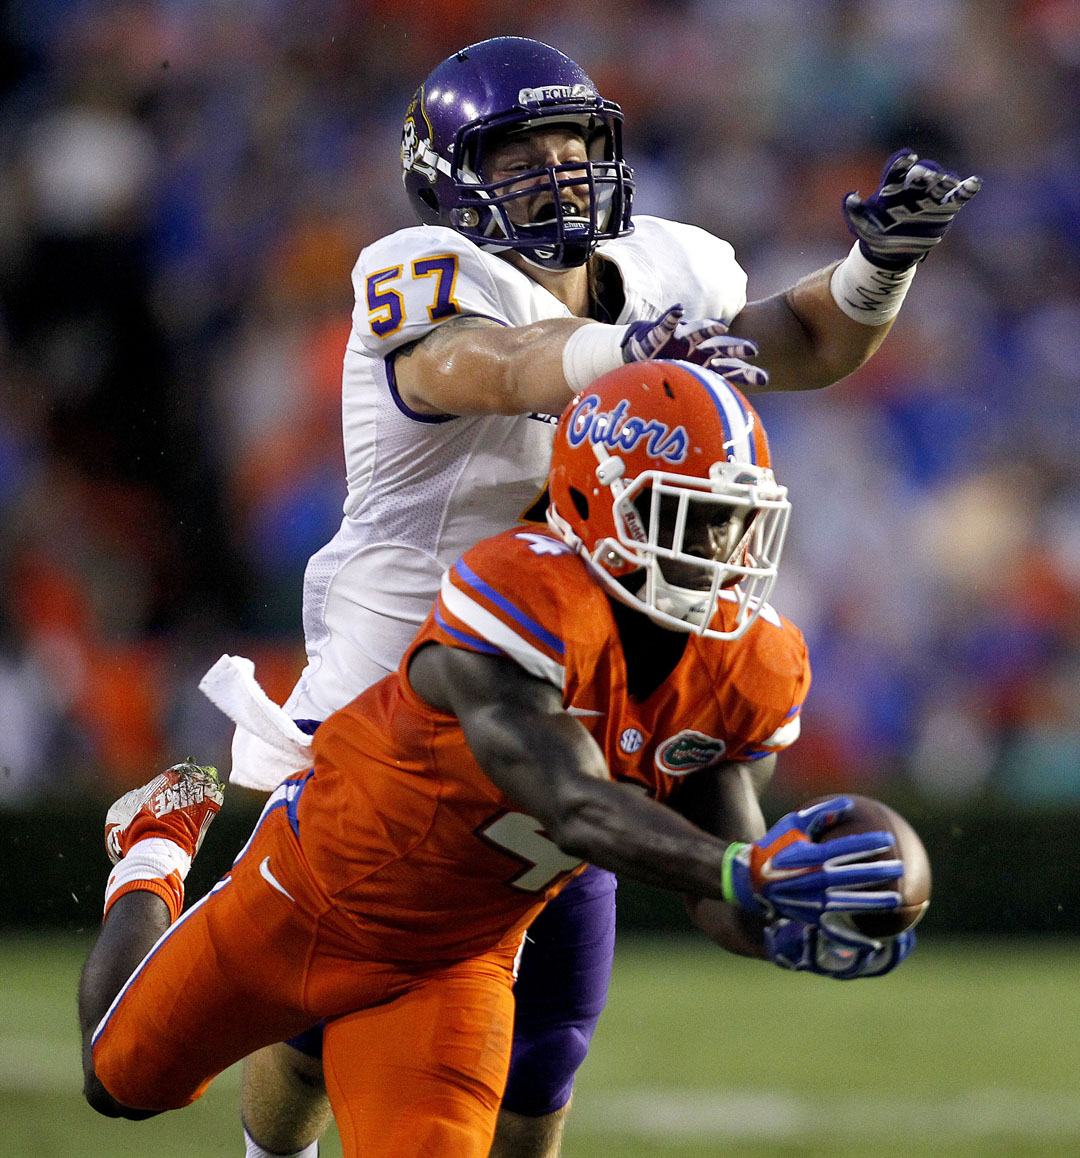 Florida Gators wide receiver Brandon Powell (4) makes a diving catch in front of of East Carolina Pirates linebacker Joe Allely (57) during the first half at Ben Hill Griffin Stadium on Saturday, Sept. 12, 2015 in Gainesville, Fla. (Matt Stamey/Staff photographer)